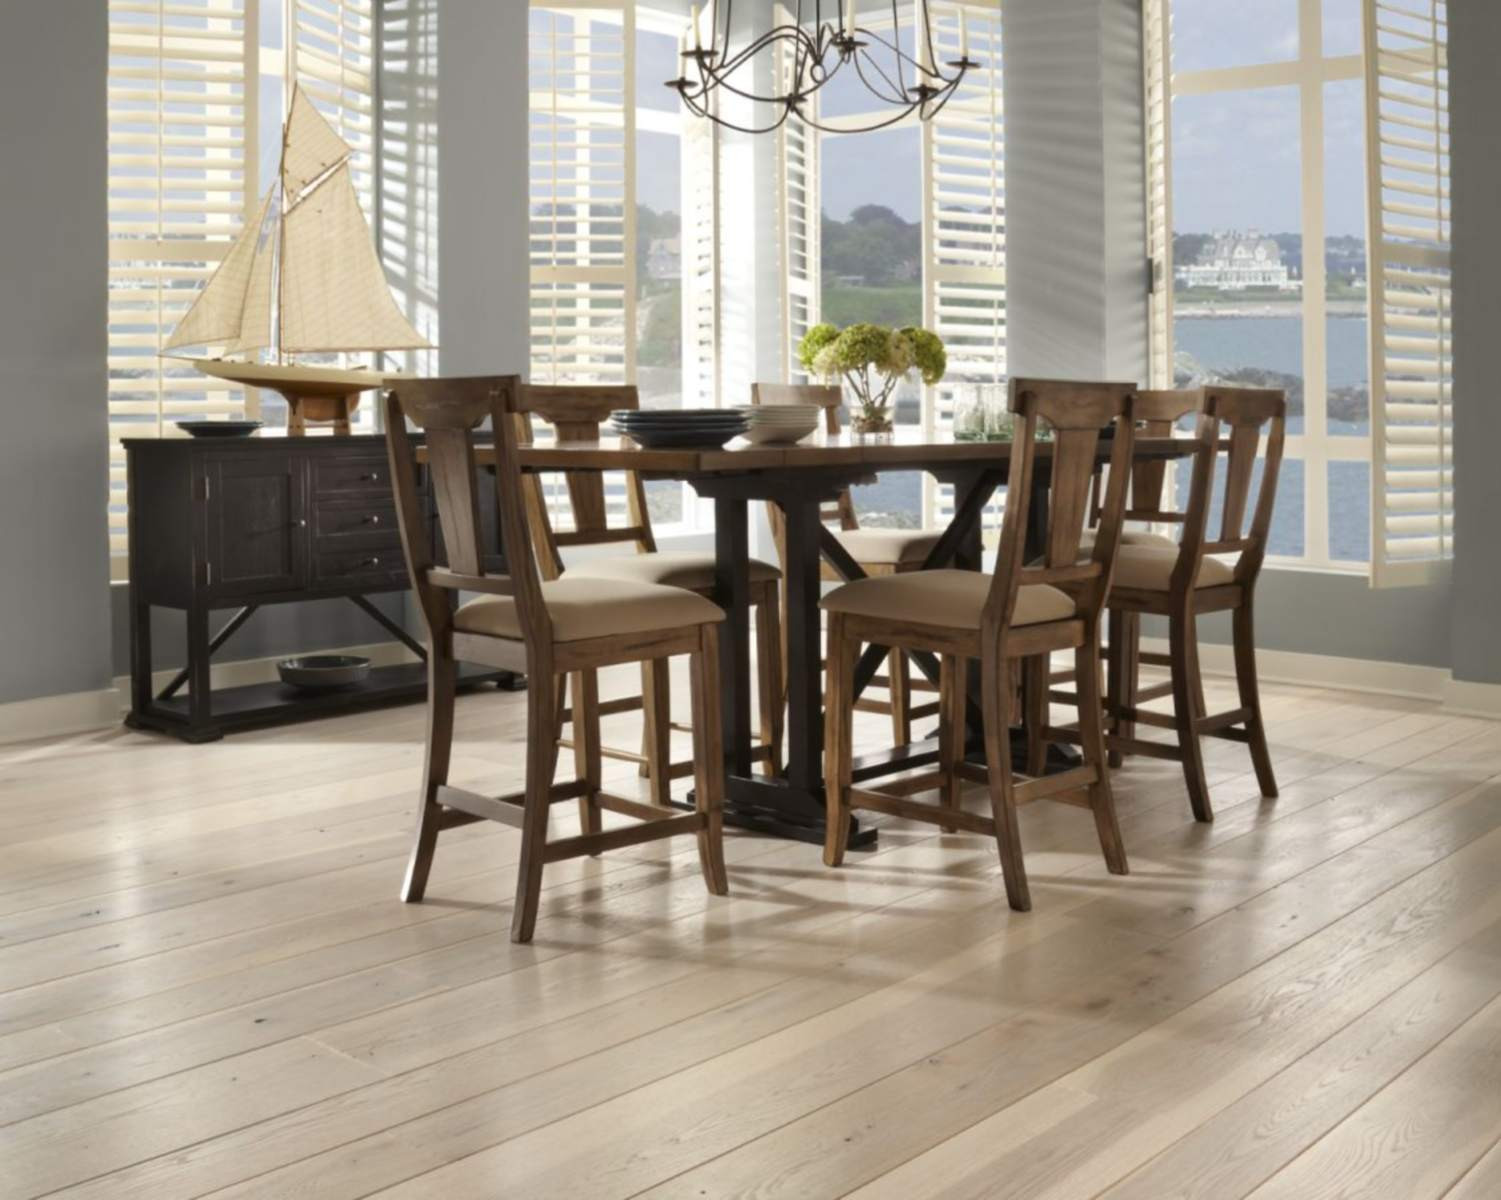 hardwood floor finish home depot of top 5 brands for solid hardwood flooring with a dining room with carlisle hickorys wide plank flooring